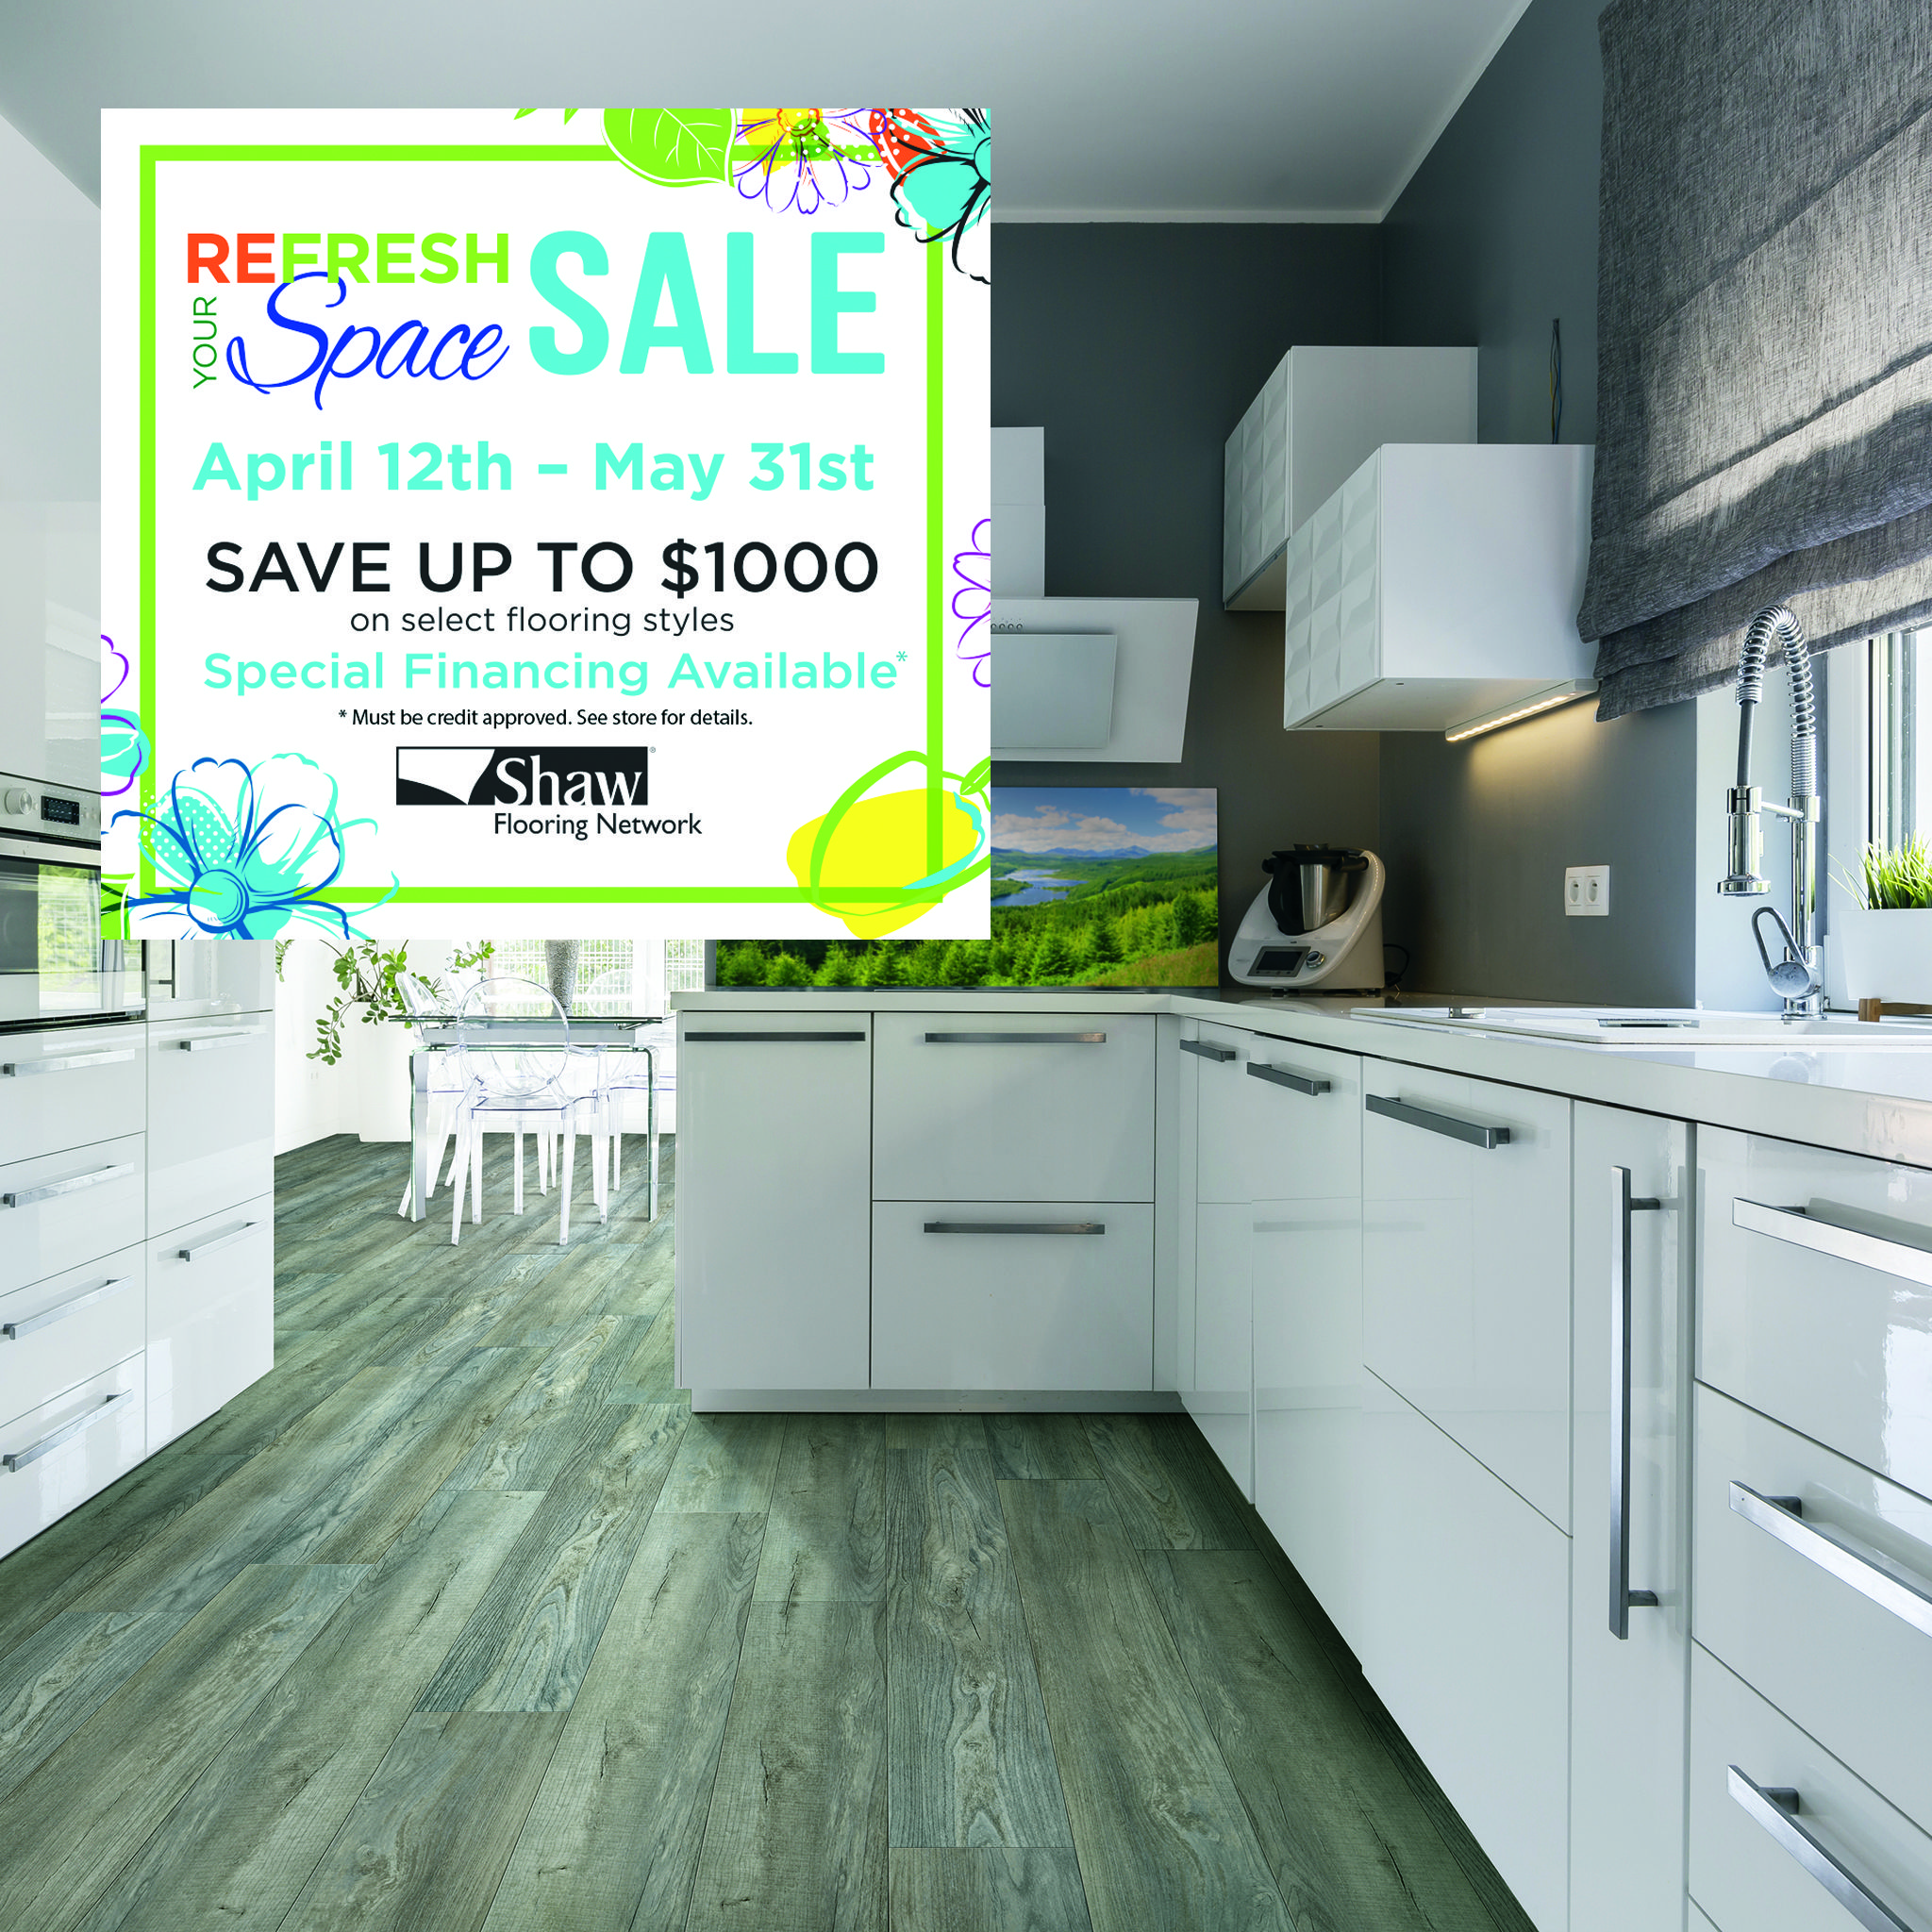 Want A Deal On New Flooring We Ve Got One For You From Now Until May 31 You Can Save Up To 1000 On Select Styles Of Sh Shaw Flooring Flooring Sale Flooring